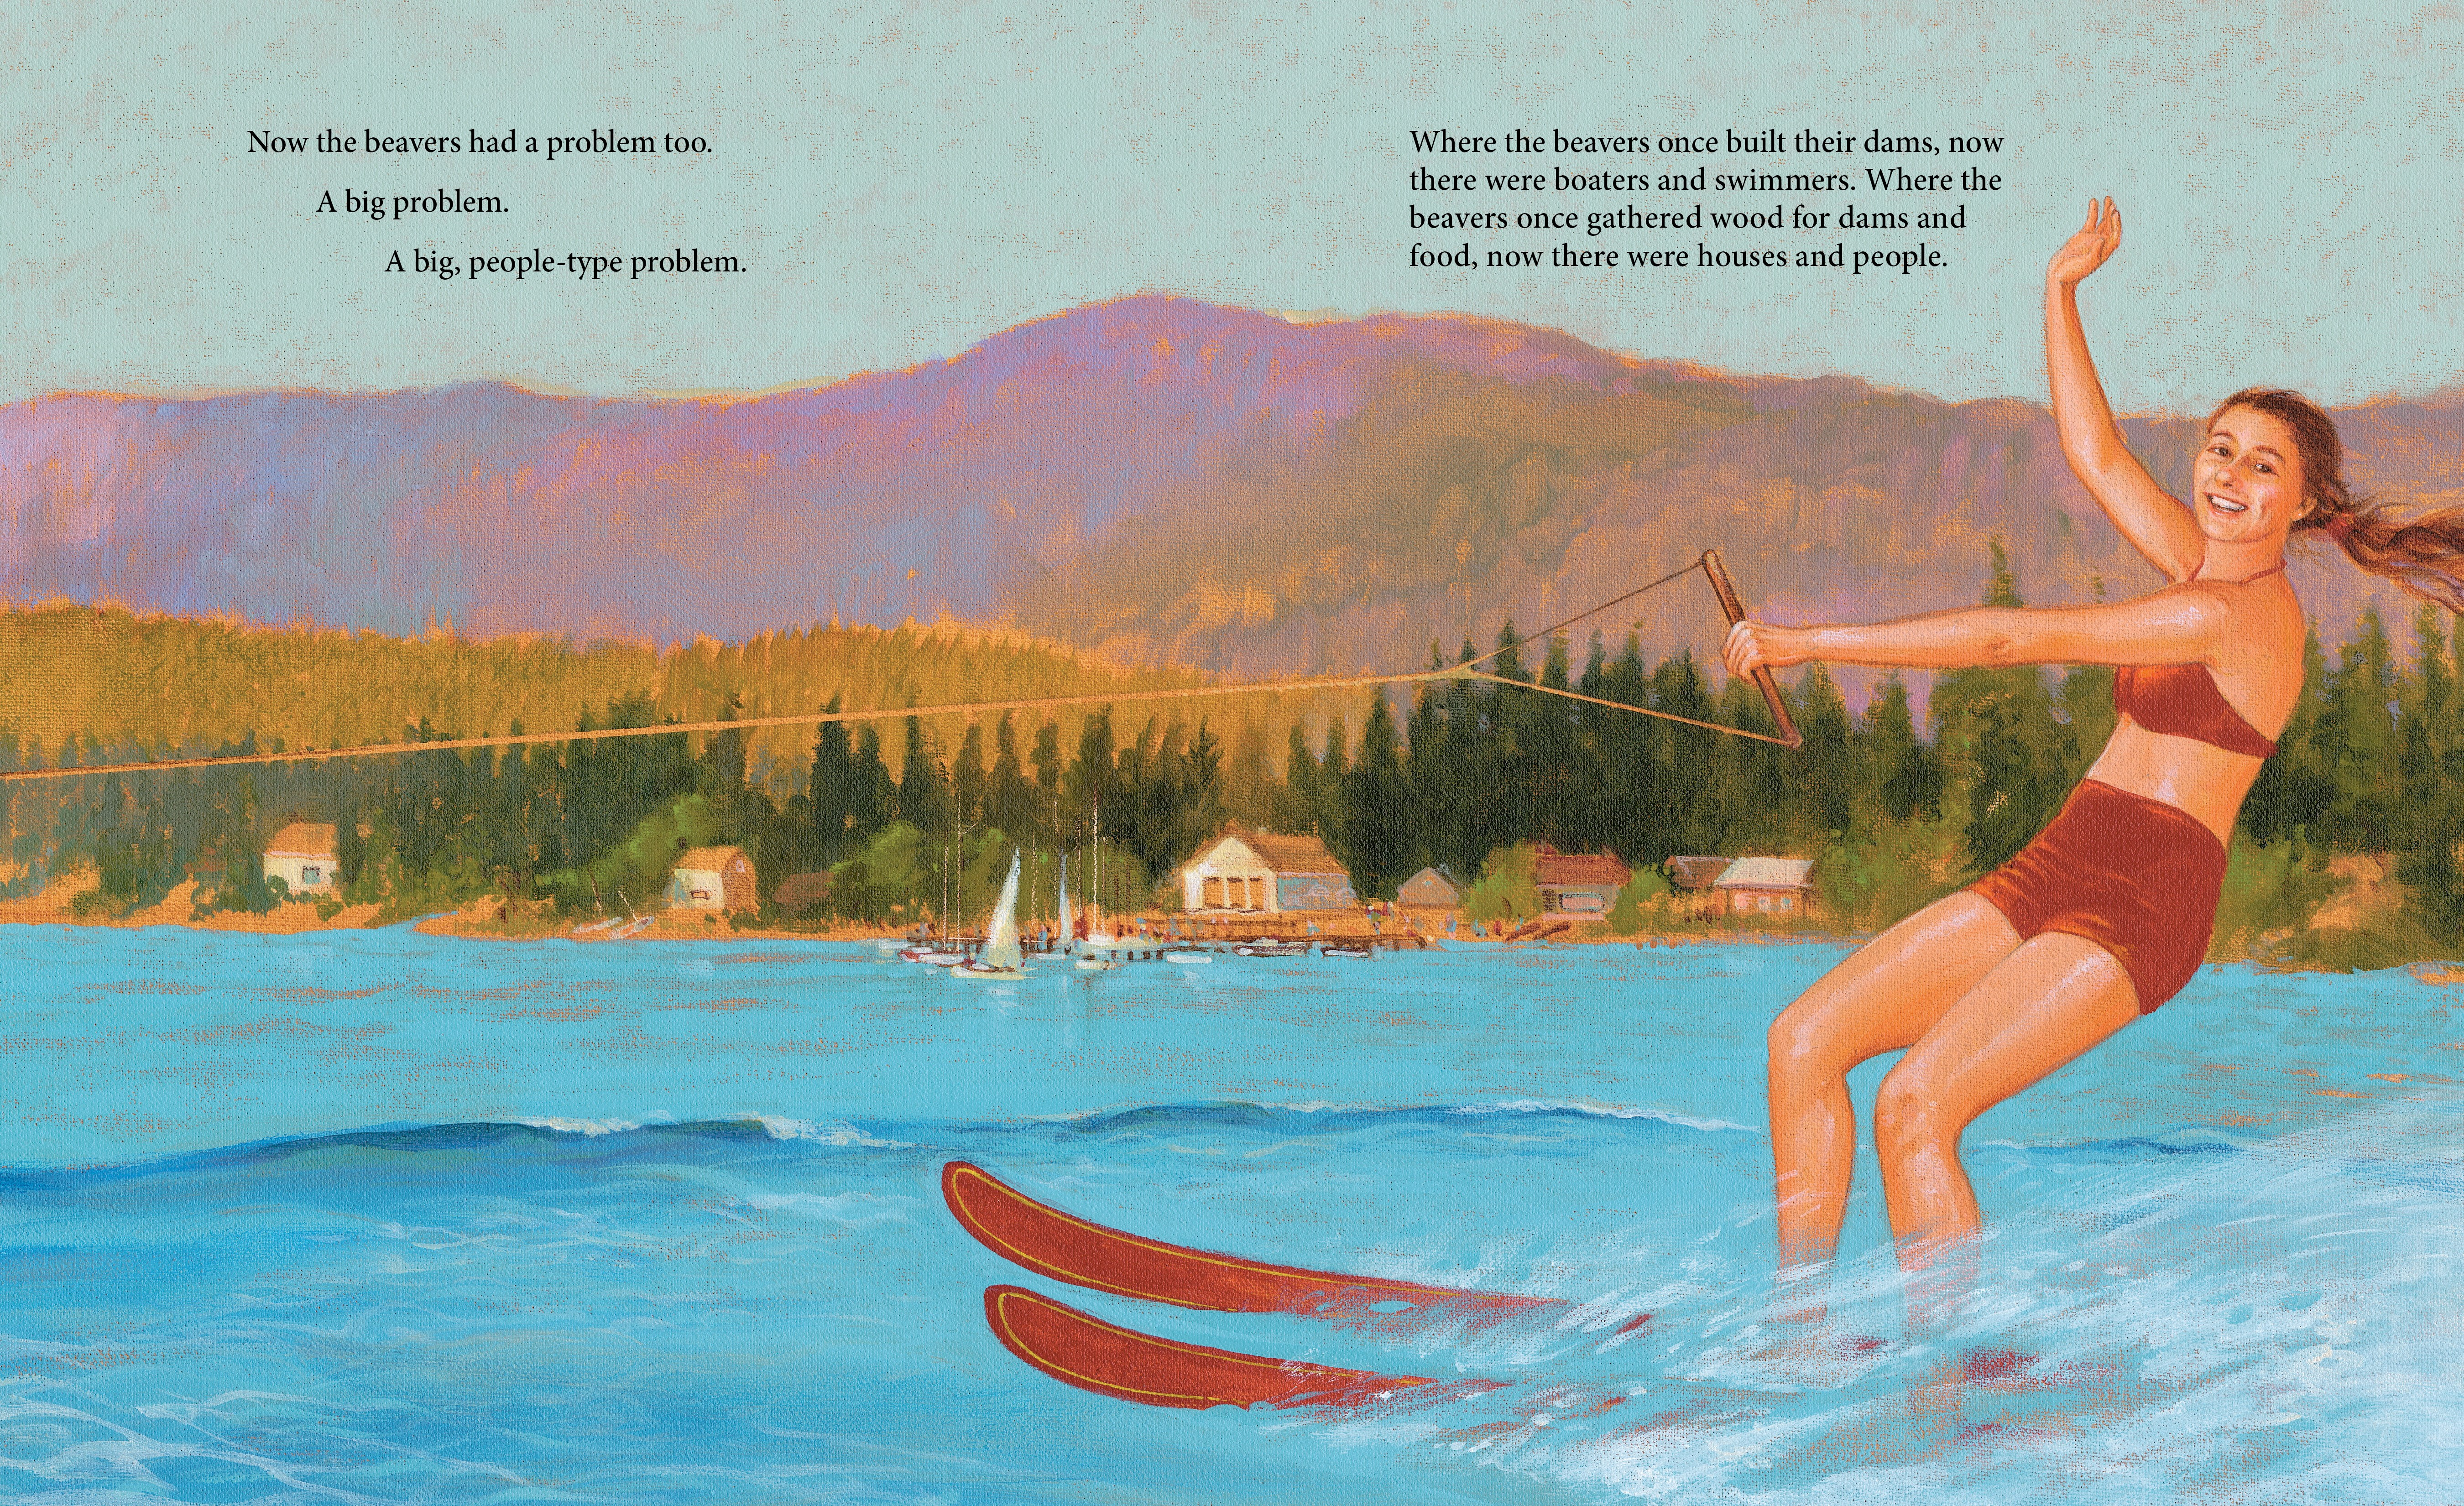 celebrate-picture-books-picture-book-review-the-skydiving-beavers-a-true-tale-water-skiing